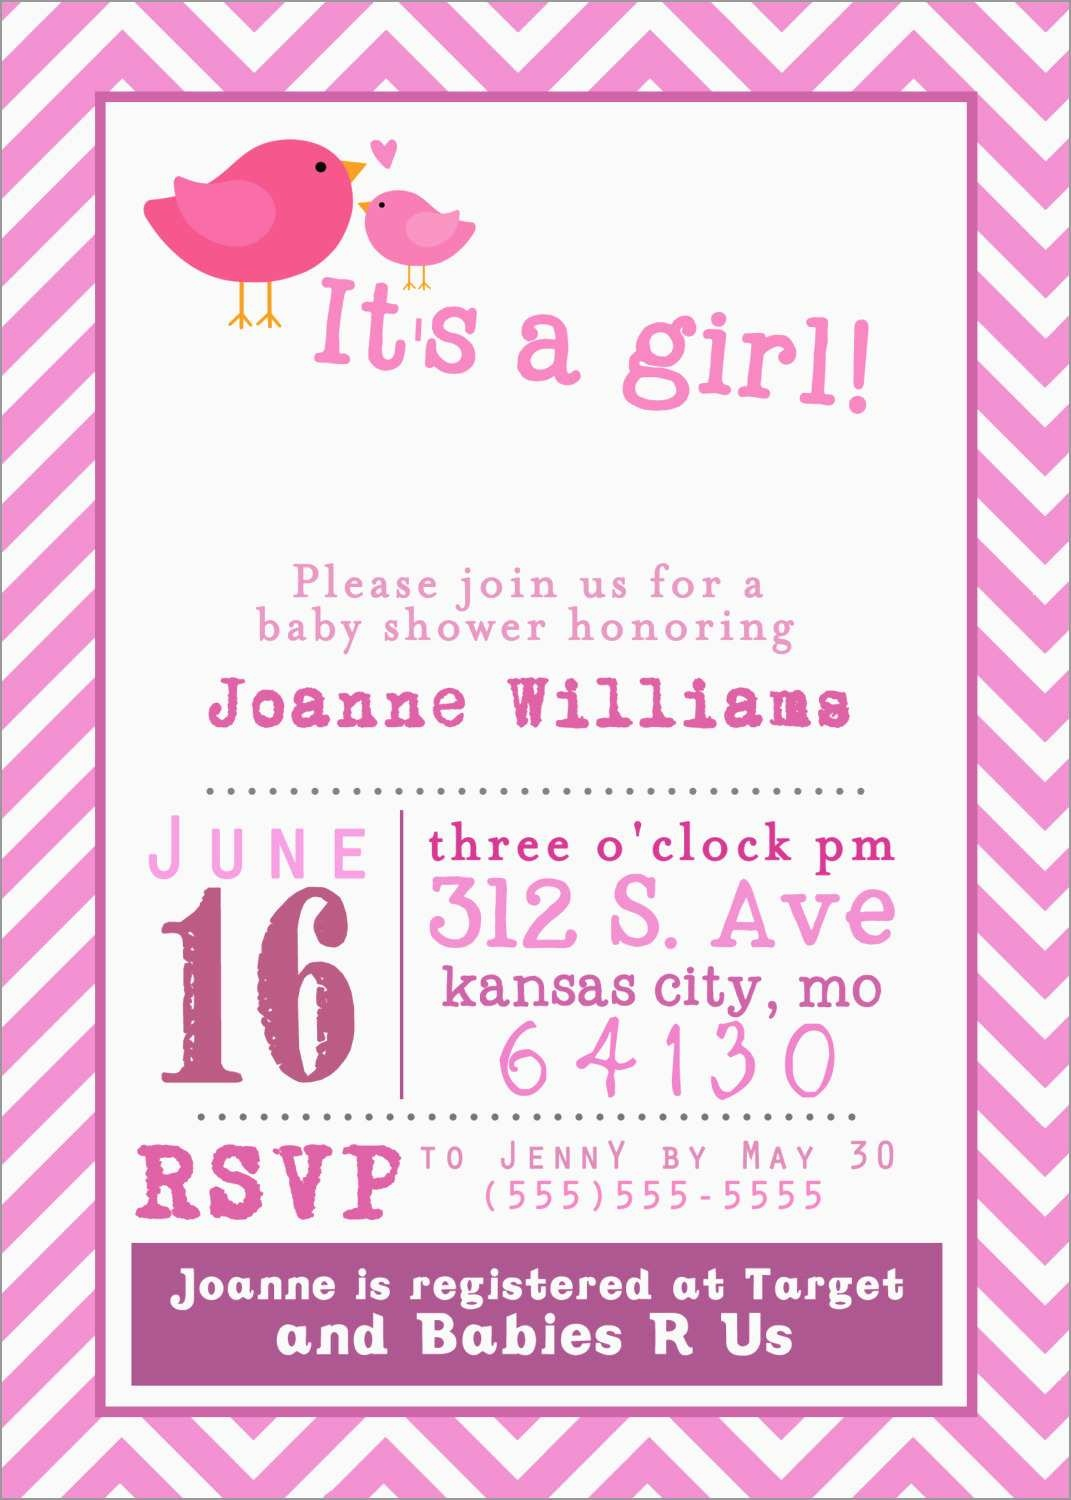 Elegant Free Online Baby Shower Invitations Templates | Best Of Template - Free Printable Baby Shower Invitation Maker